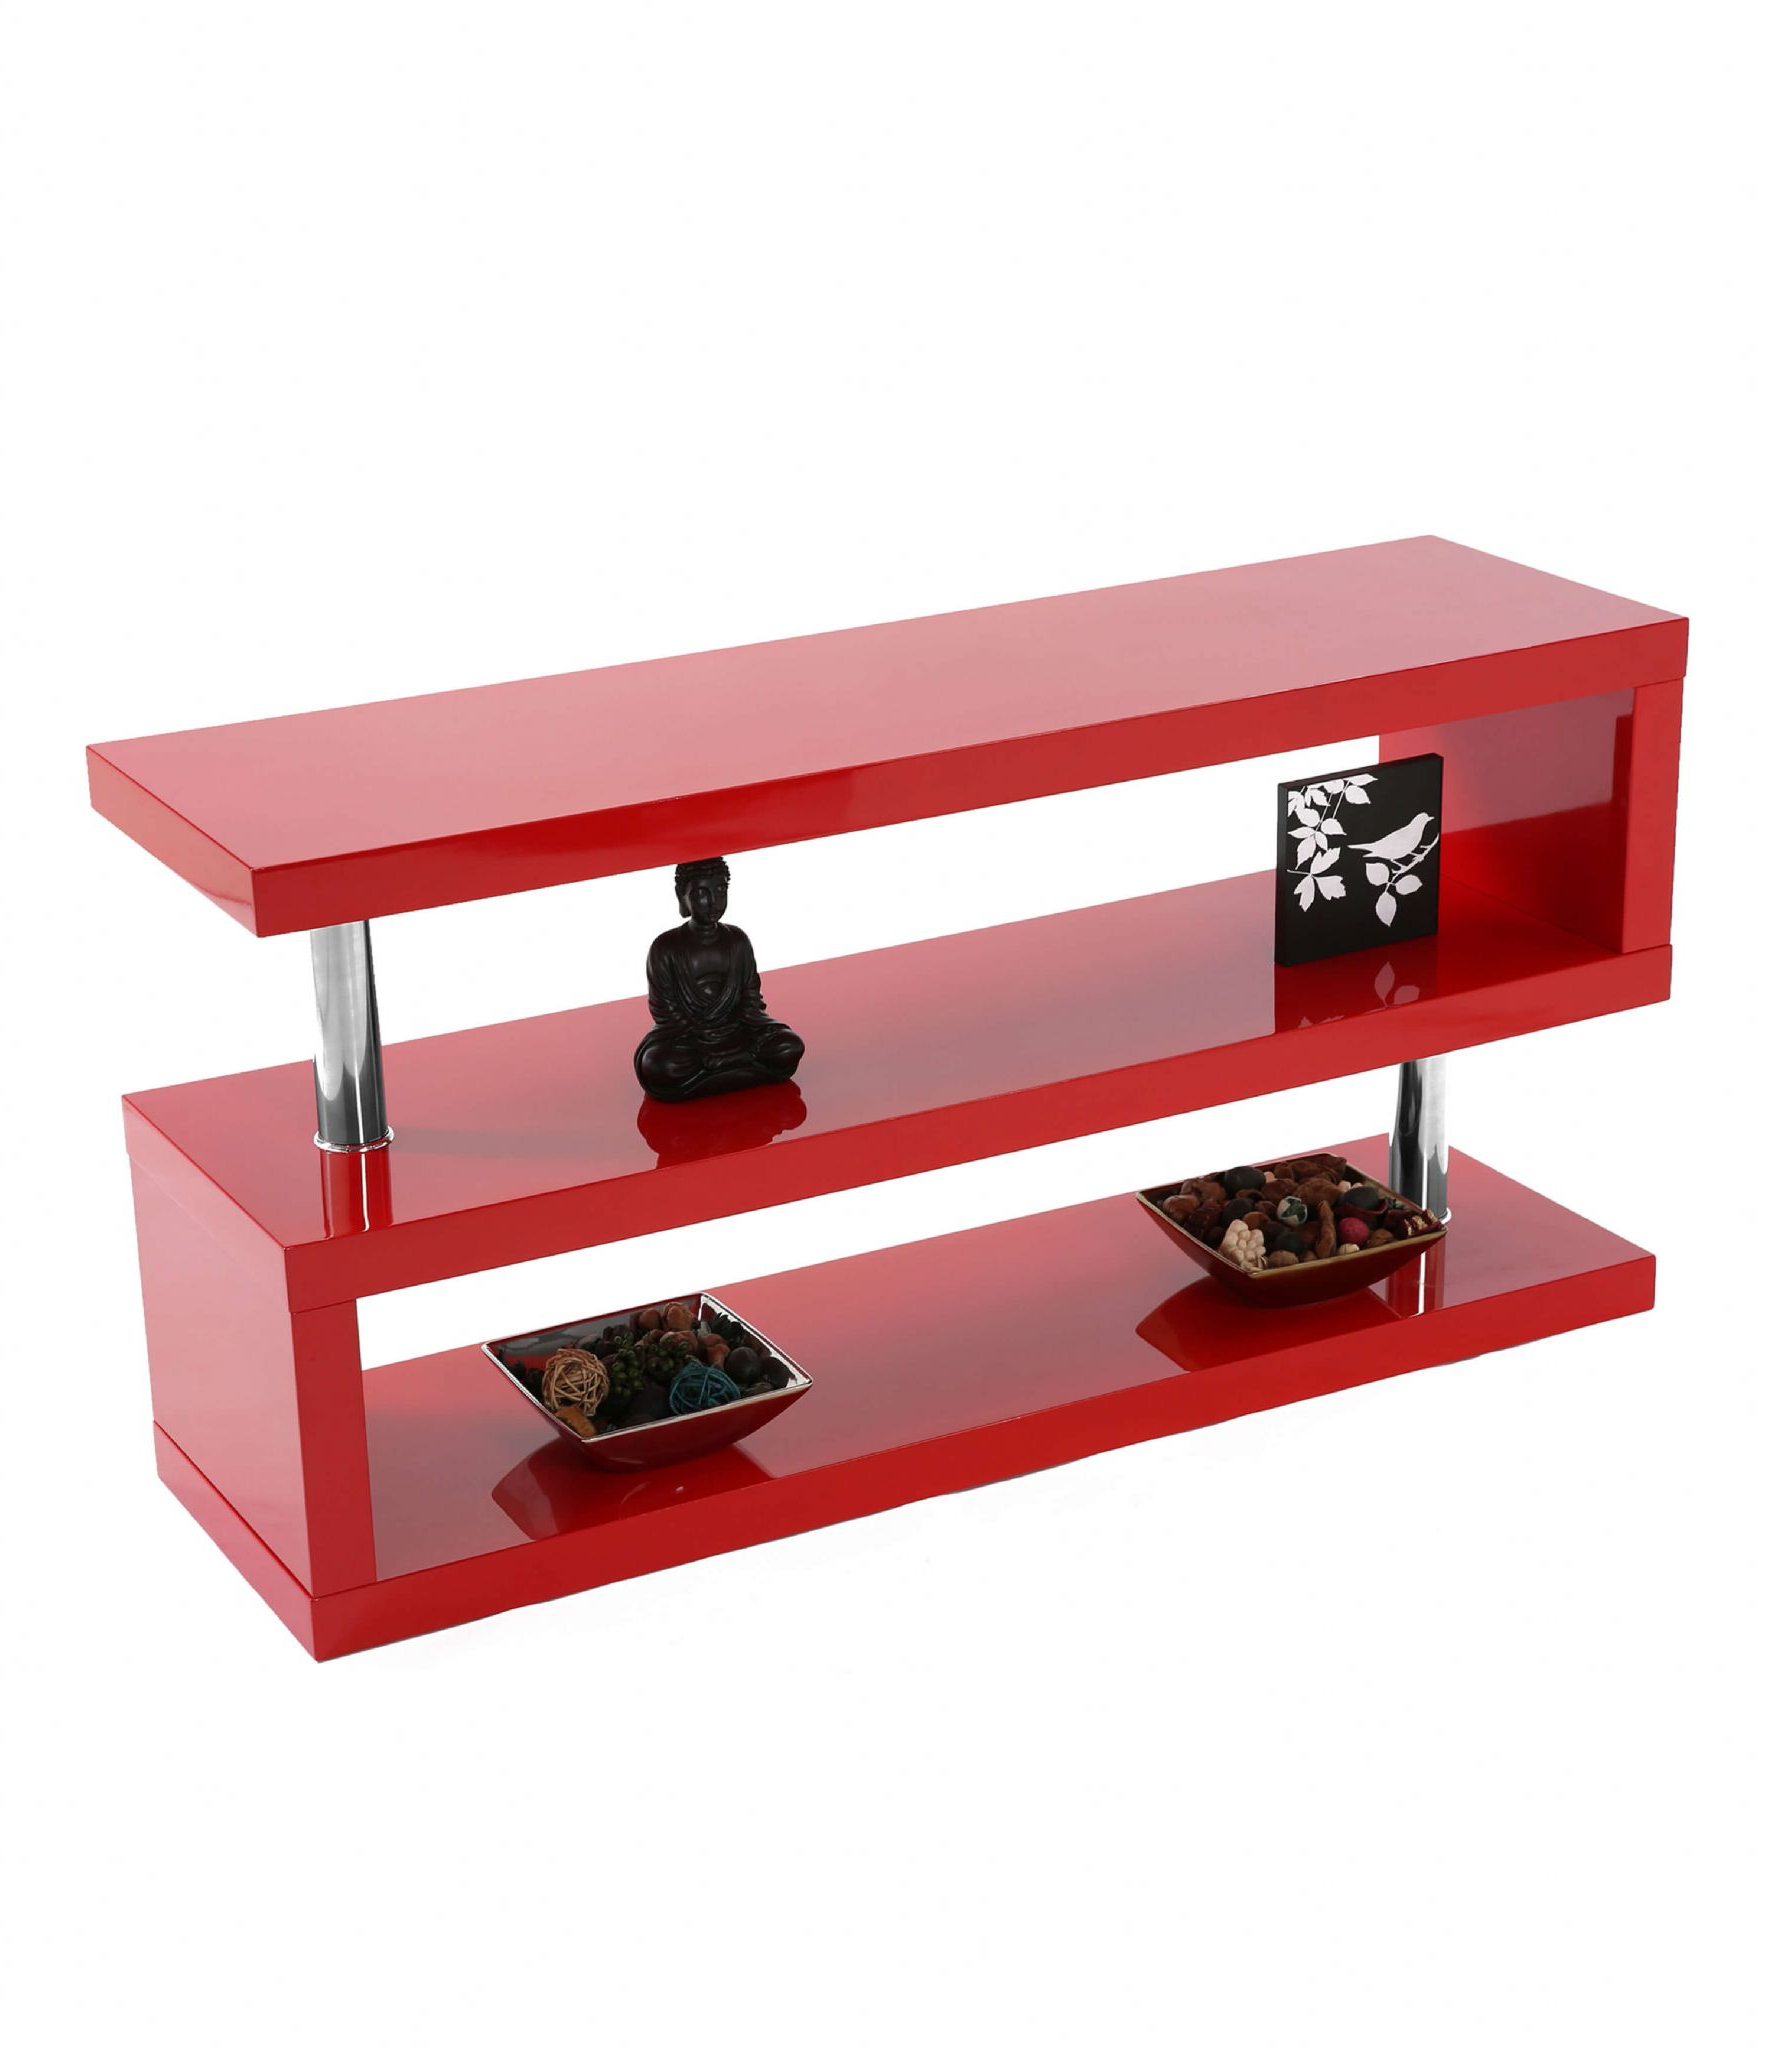 2018 Red Gloss S Television Stand Inside Red Gloss Tv Stands (Gallery 9 of 20)